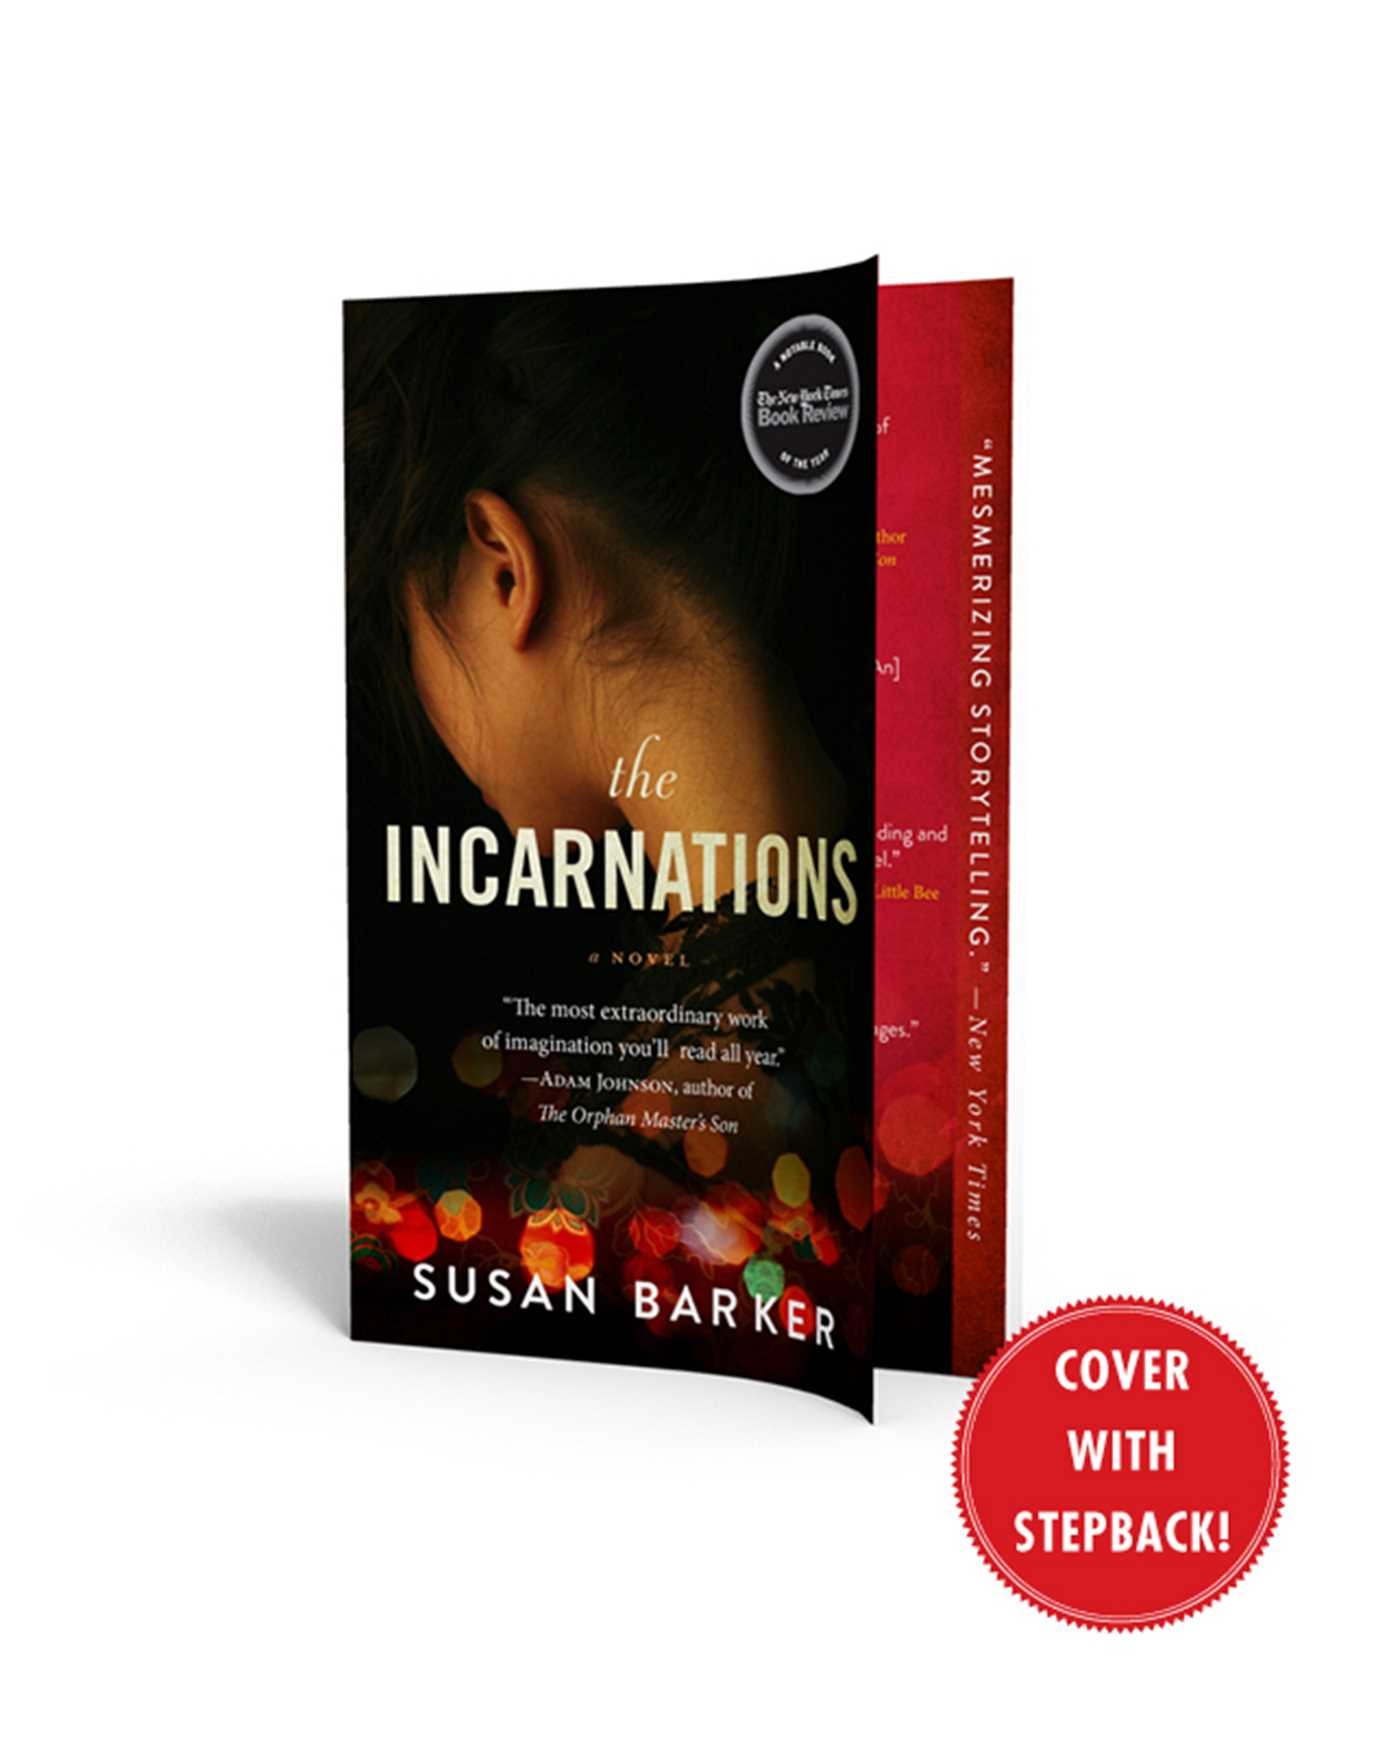 The incarnations 9781501106798.in17